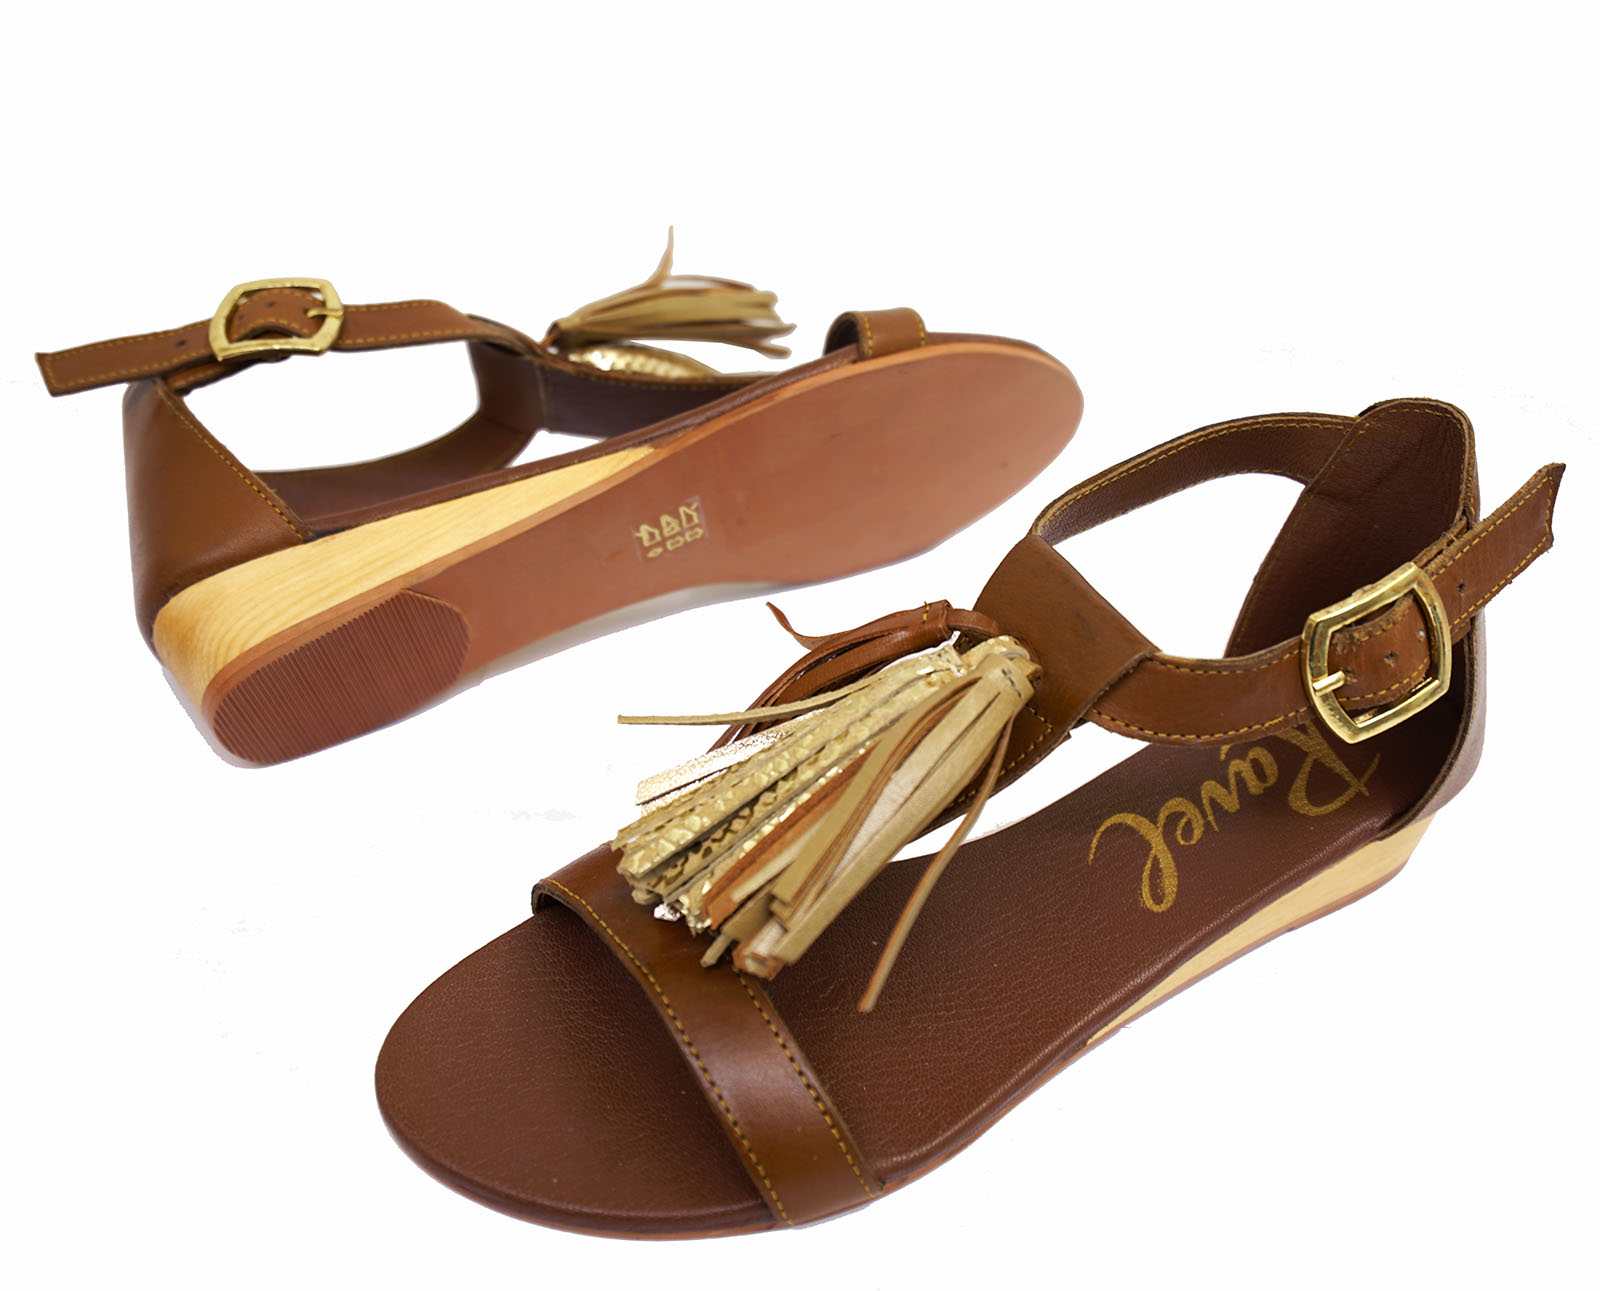 LADIES-RAVEL-ASTORIA-FLAT-LEATHER-TAN-SANDALS-SLIP-ON-T-BAR-STRAPPY-SHOES-UK-3-8 thumbnail 6